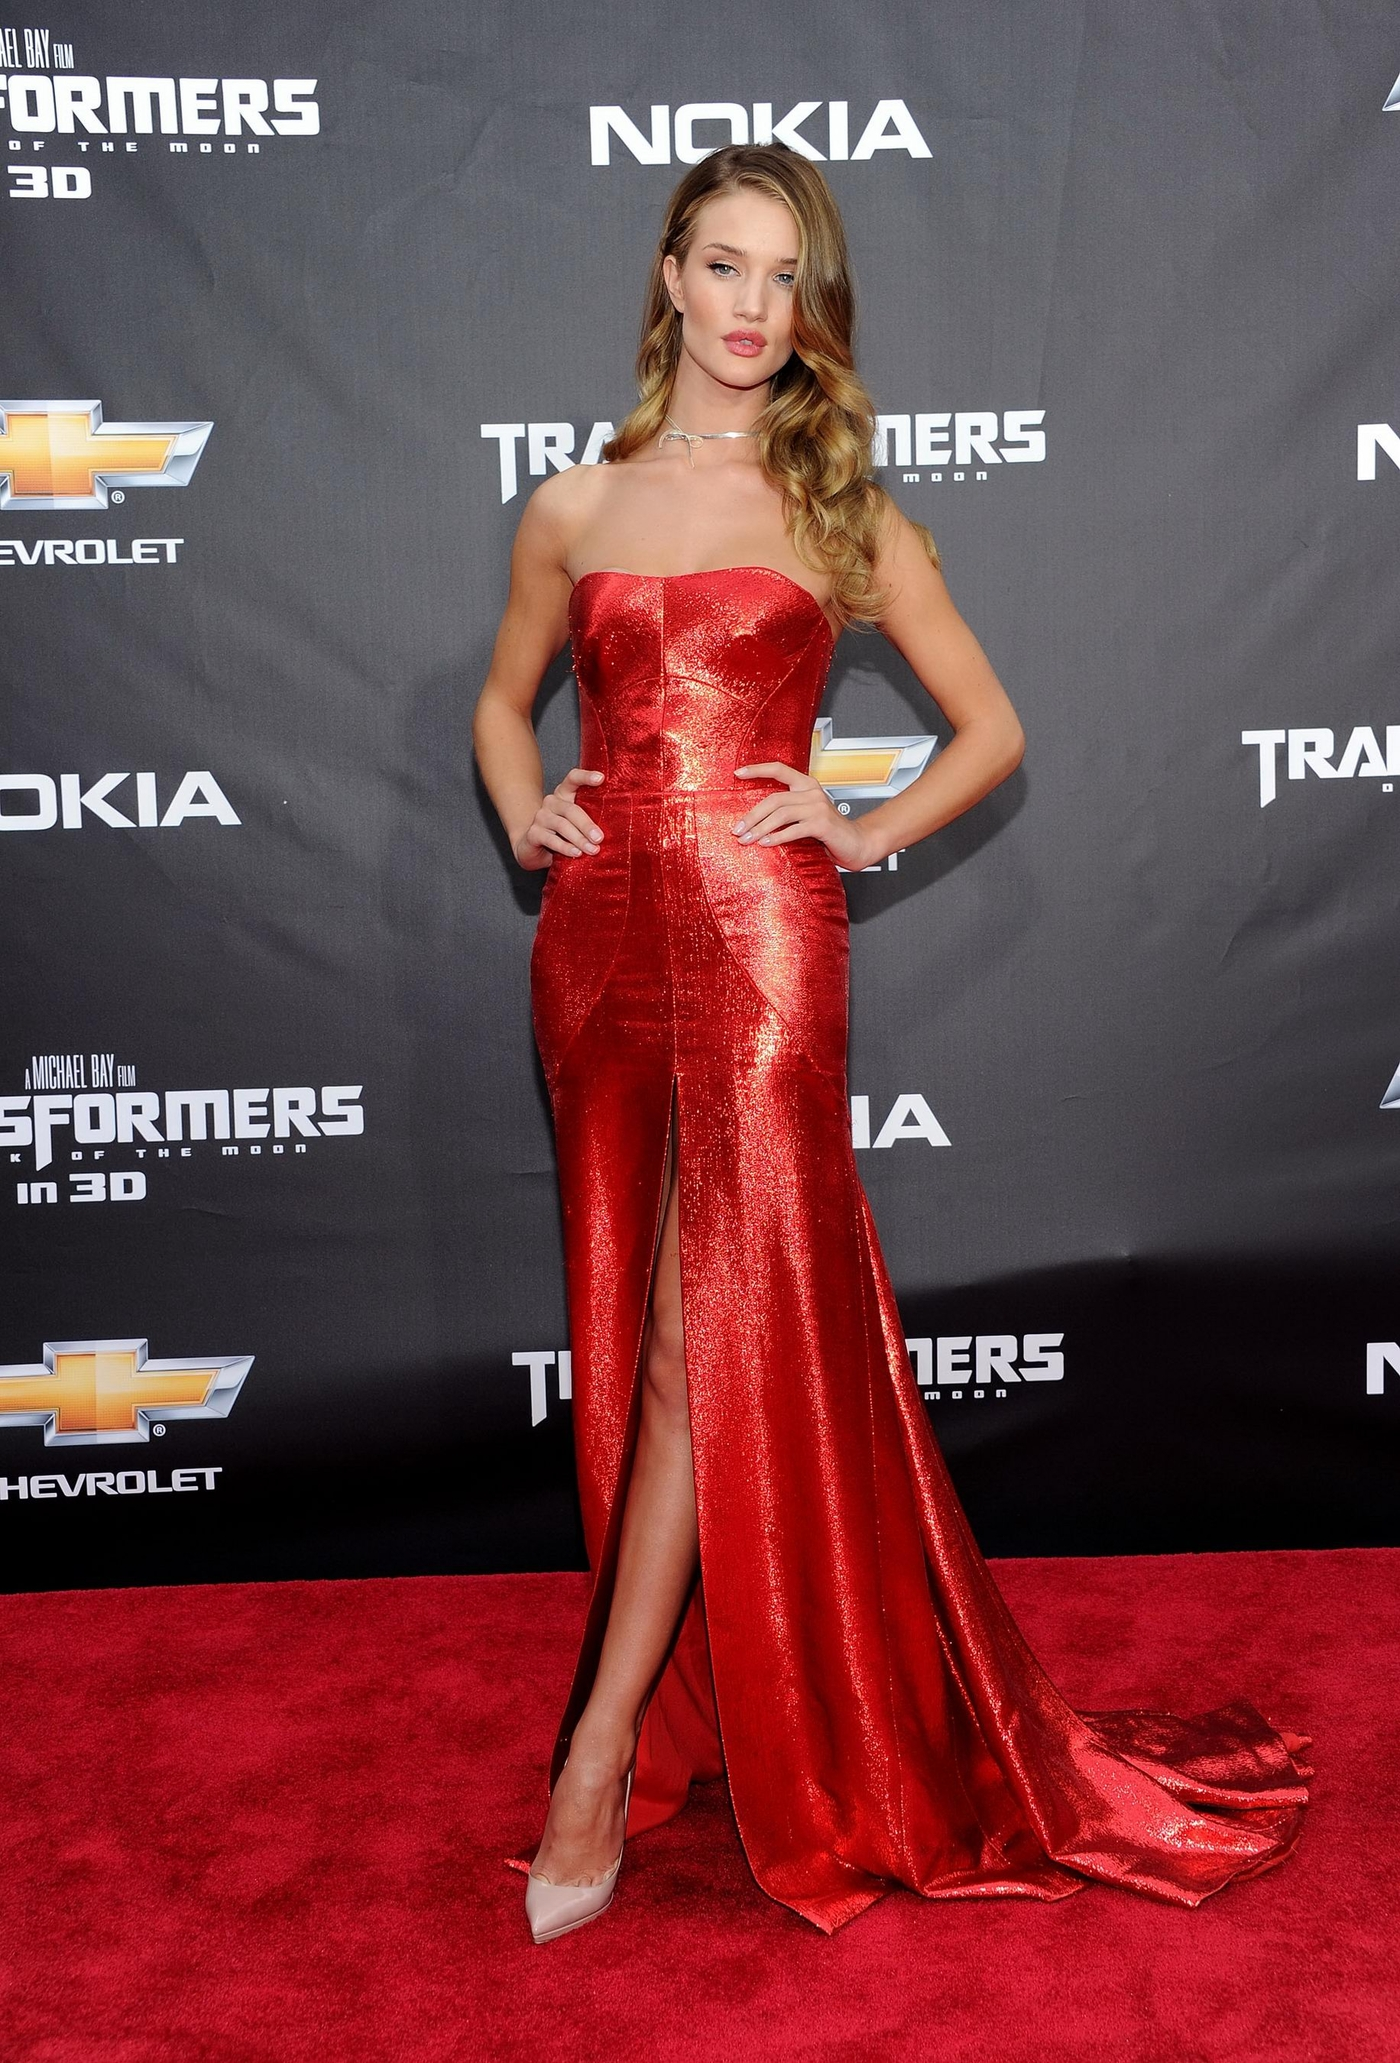 Rosie Huntington Whiteley In Red Dress At Transformers 3